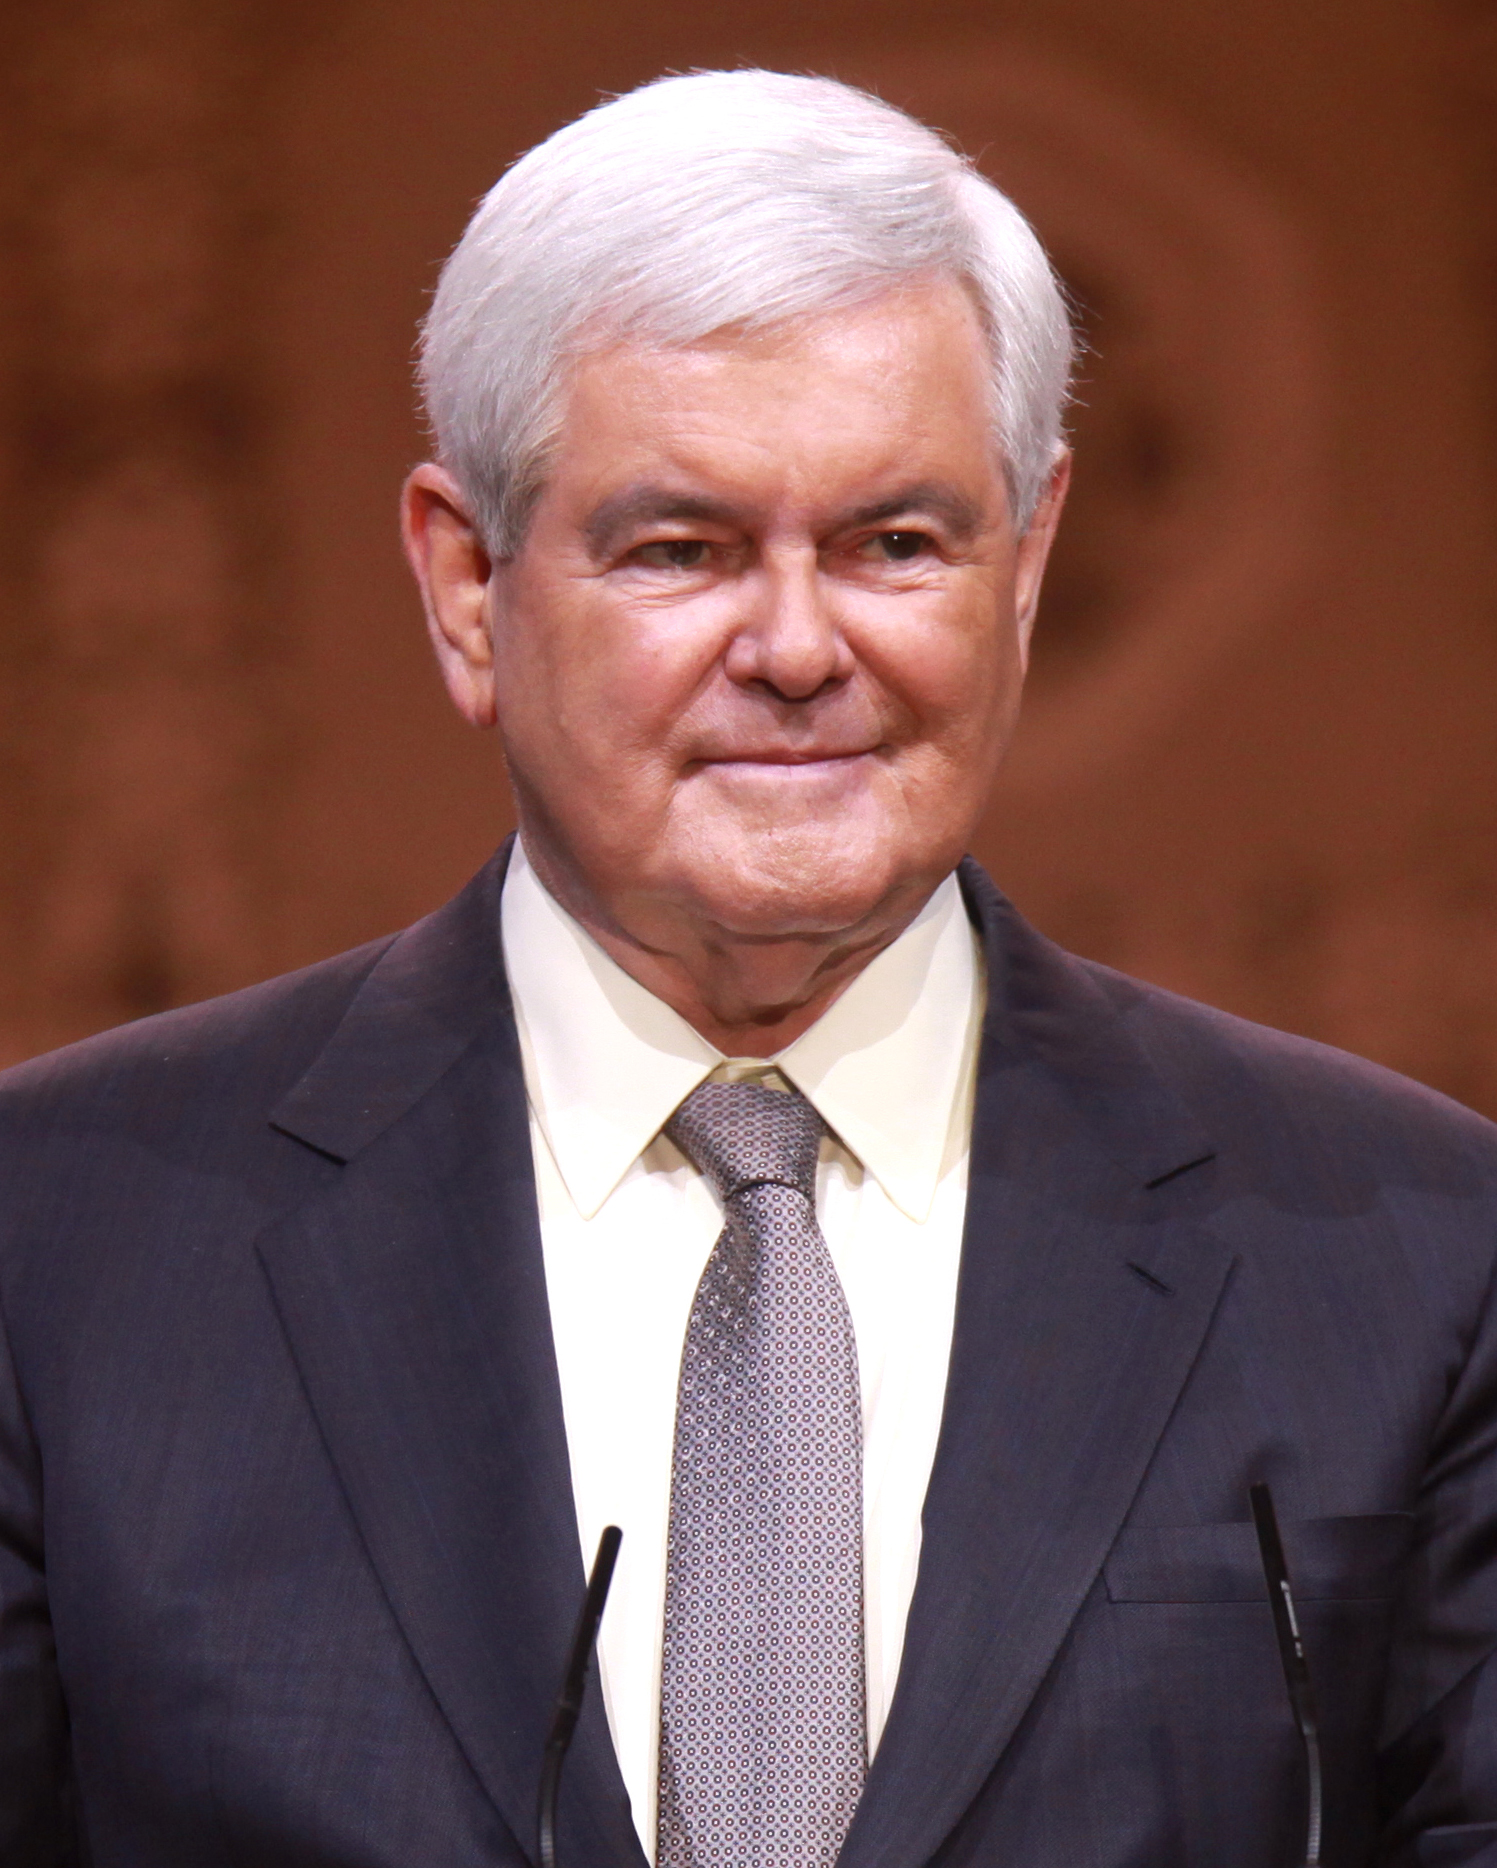 Newt Gingrich Newt Gingrich Wikipedia the free encyclopedia